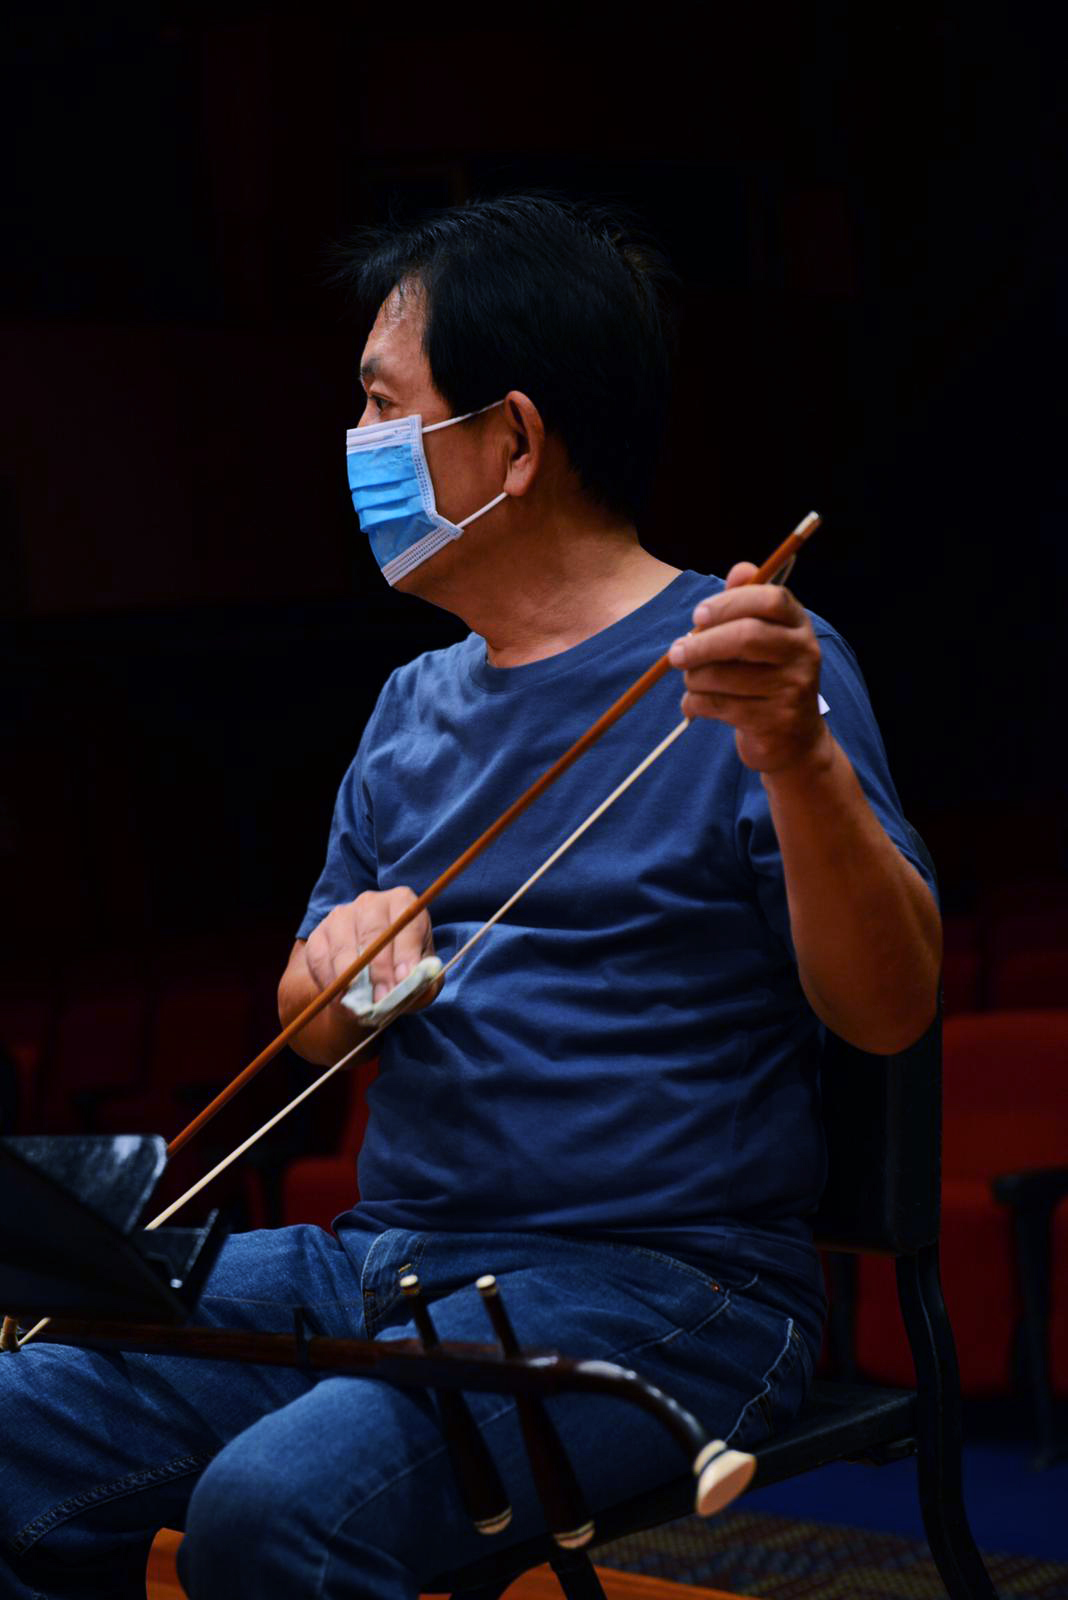 SCO_photo_editorial_17 COVID-19 Phase 2: Lights on! Singapore Chinese Orchestra back to rehearsal after 91 days